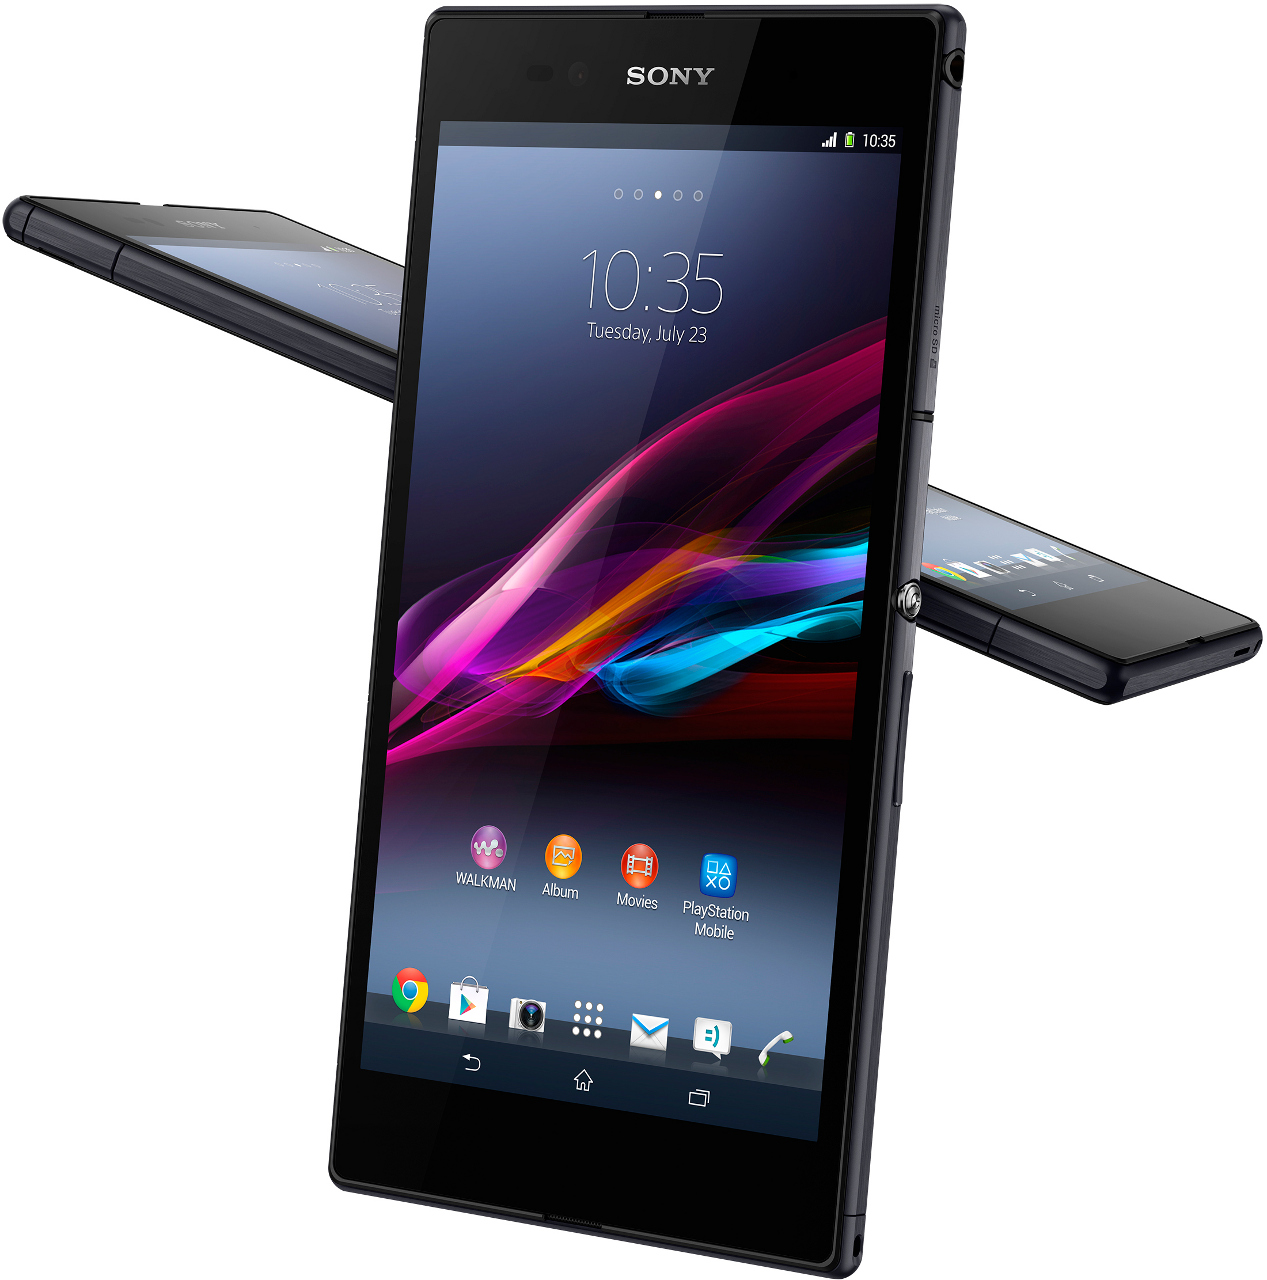 Unroot Sony Xperia Z Ultra How To Root Sony Xperia Z Ultra Smartphone